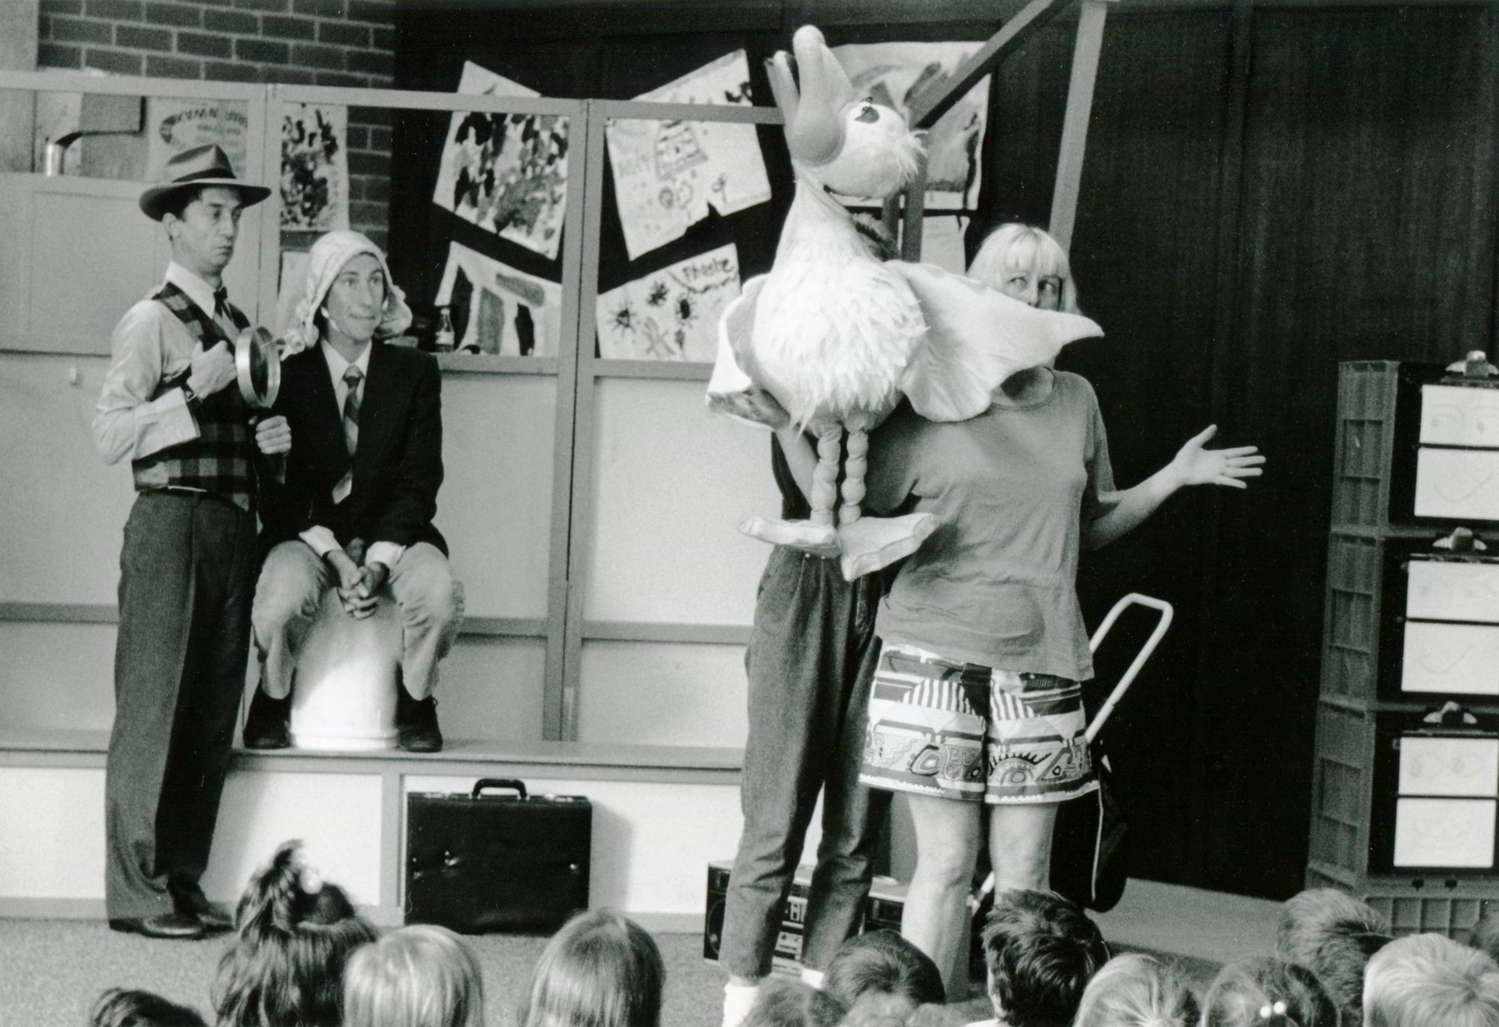 actors on stage in a classroom with puppet duck, head held high, quacking